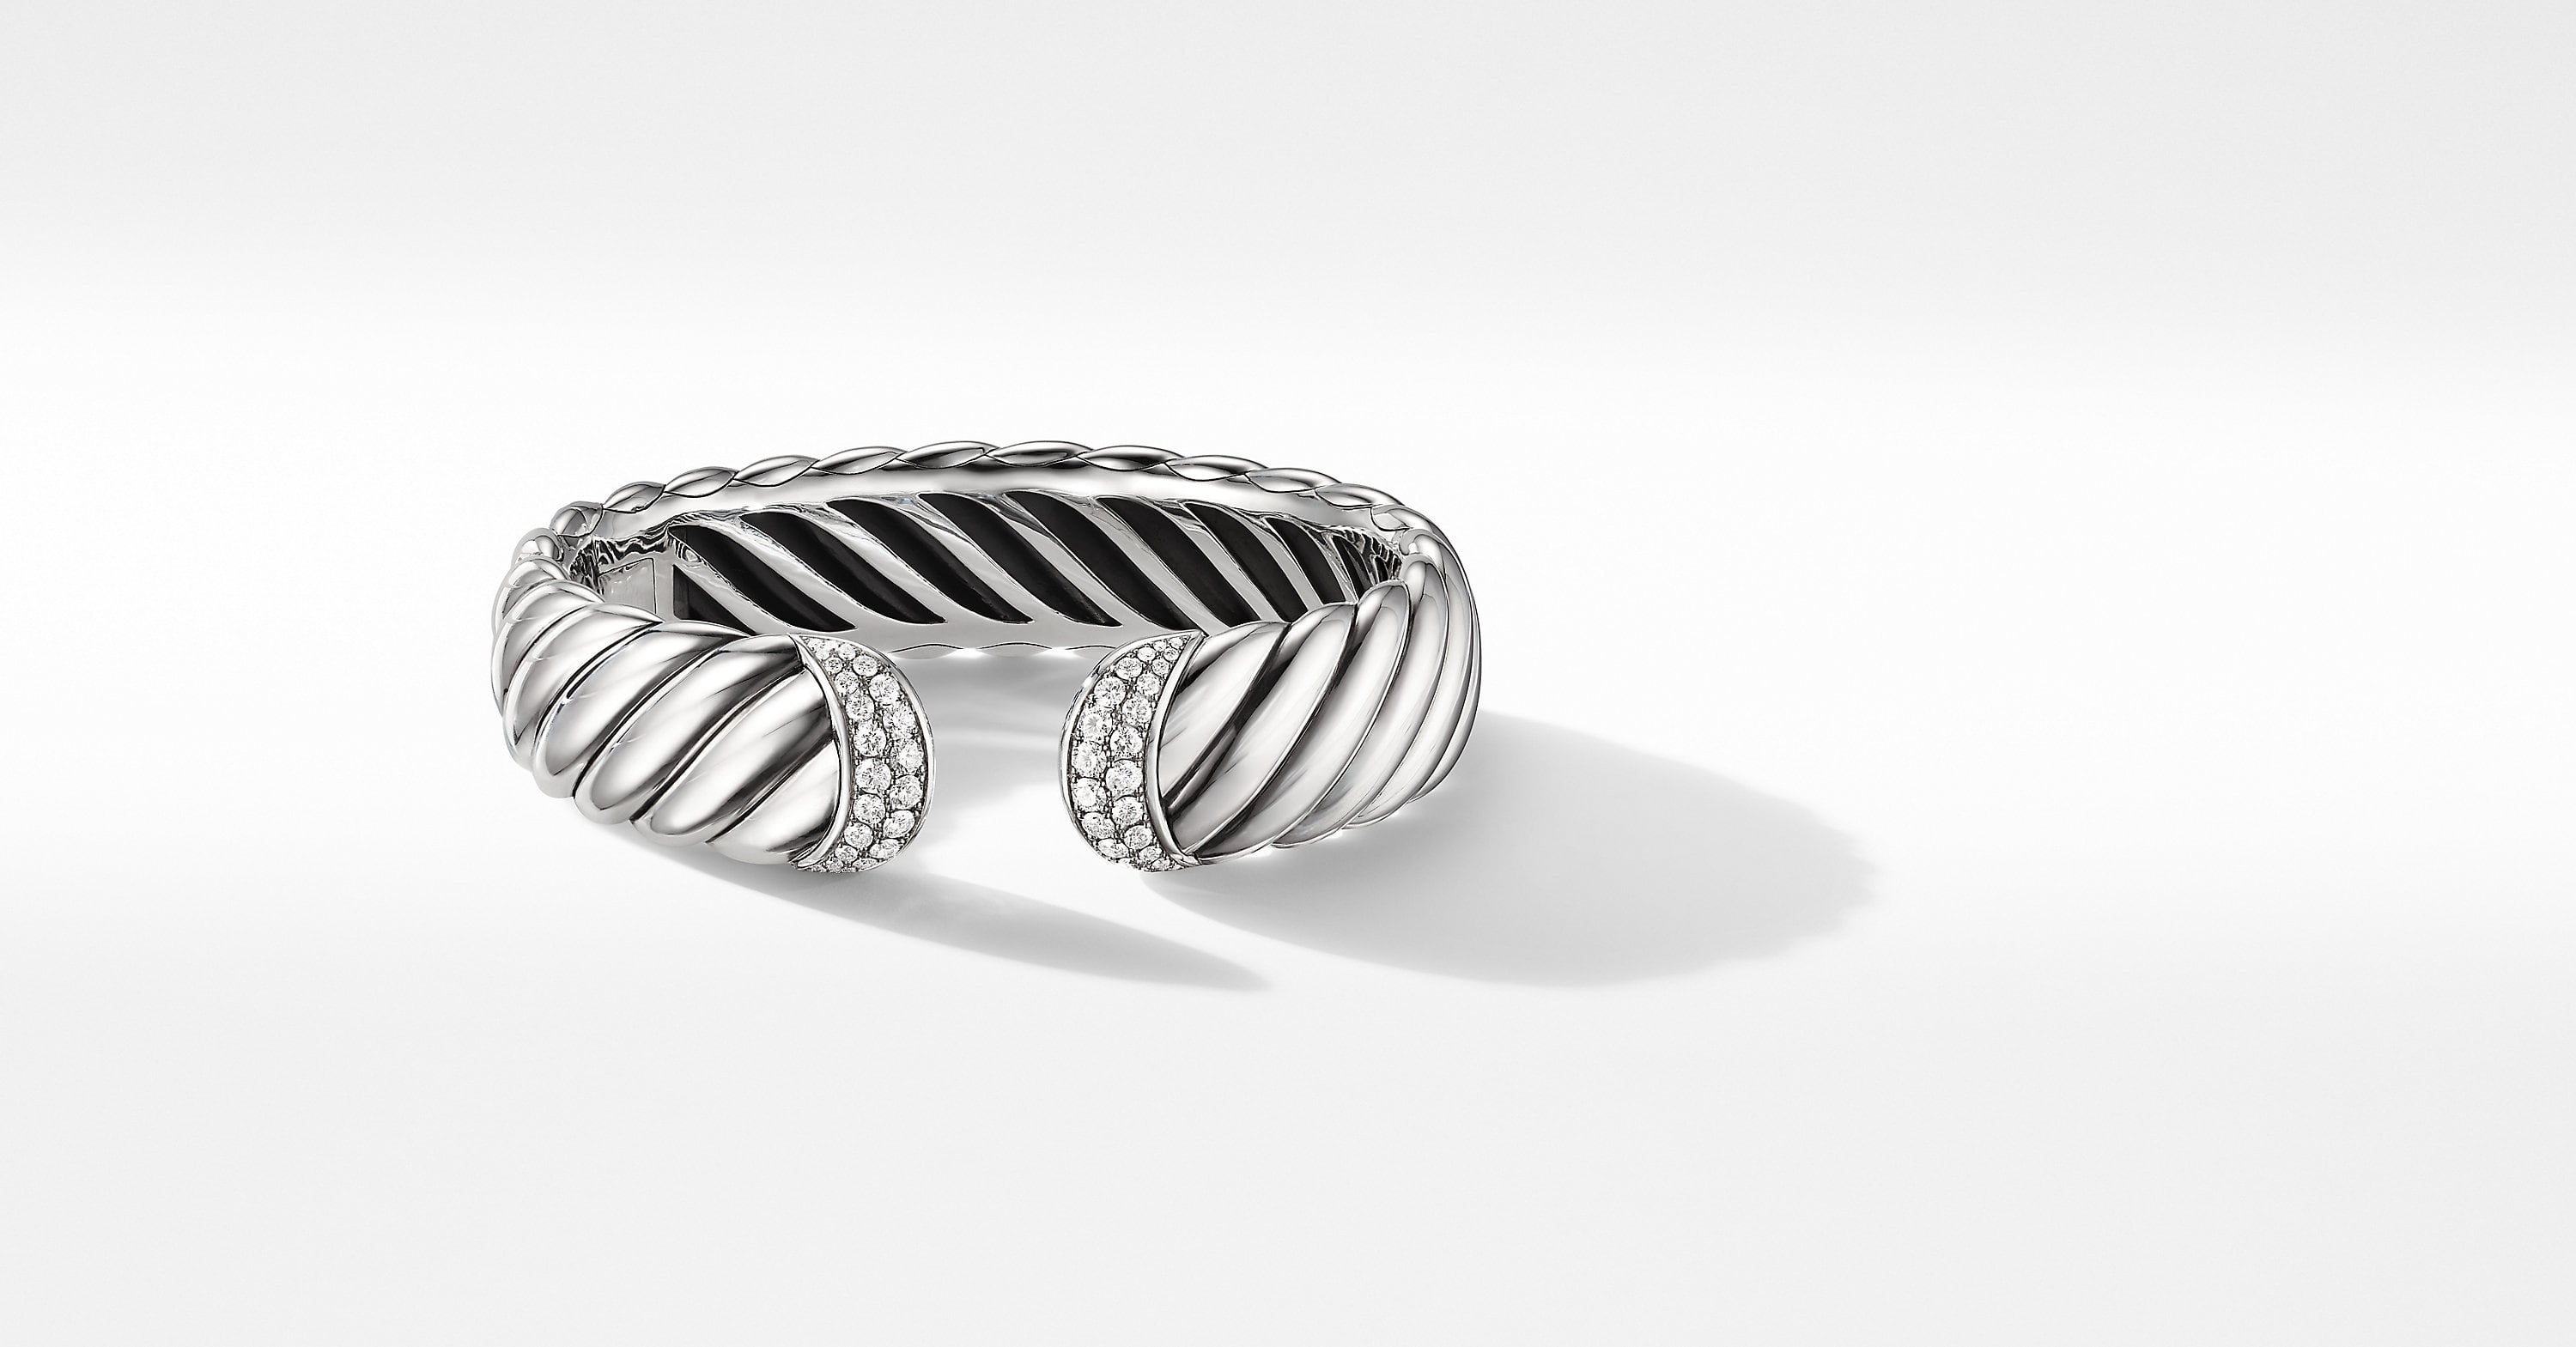 Sculpted Cable Cuff Bracelet with Diamonds, 17mm